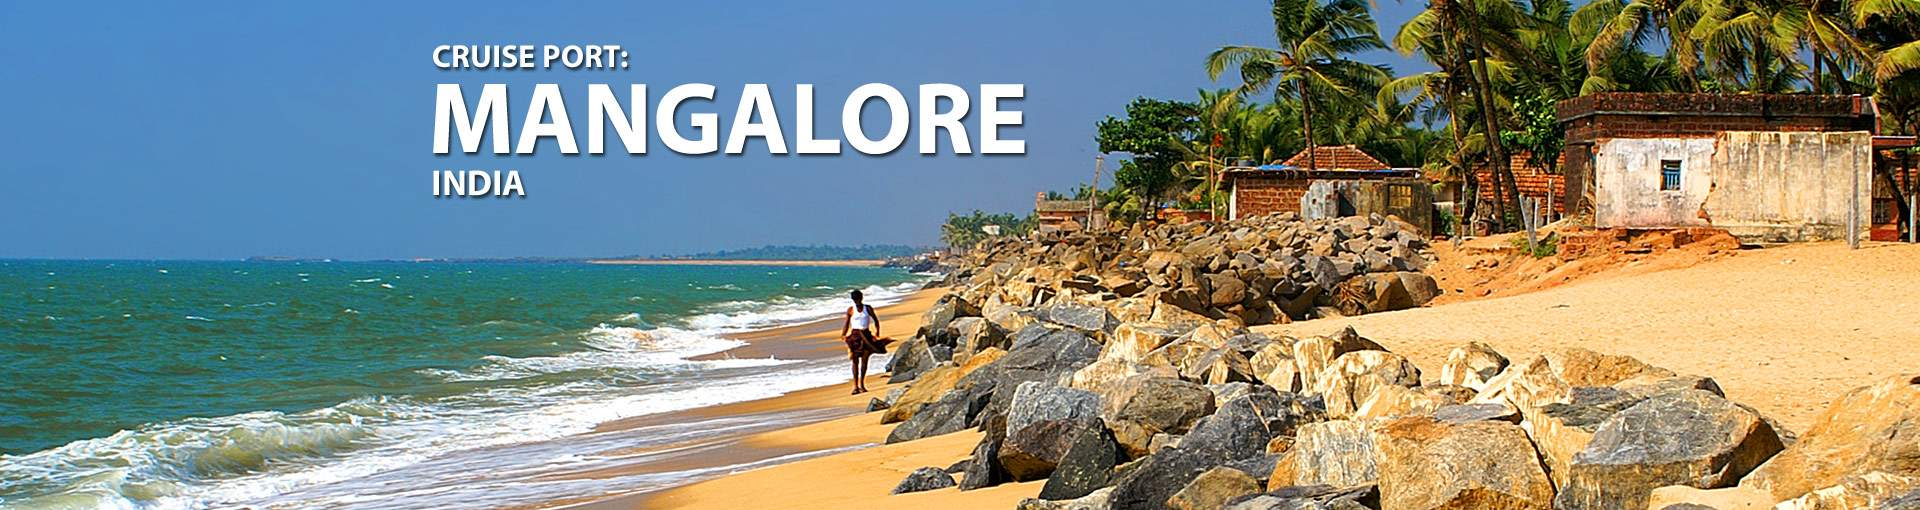 Cruises from Mangalore, India